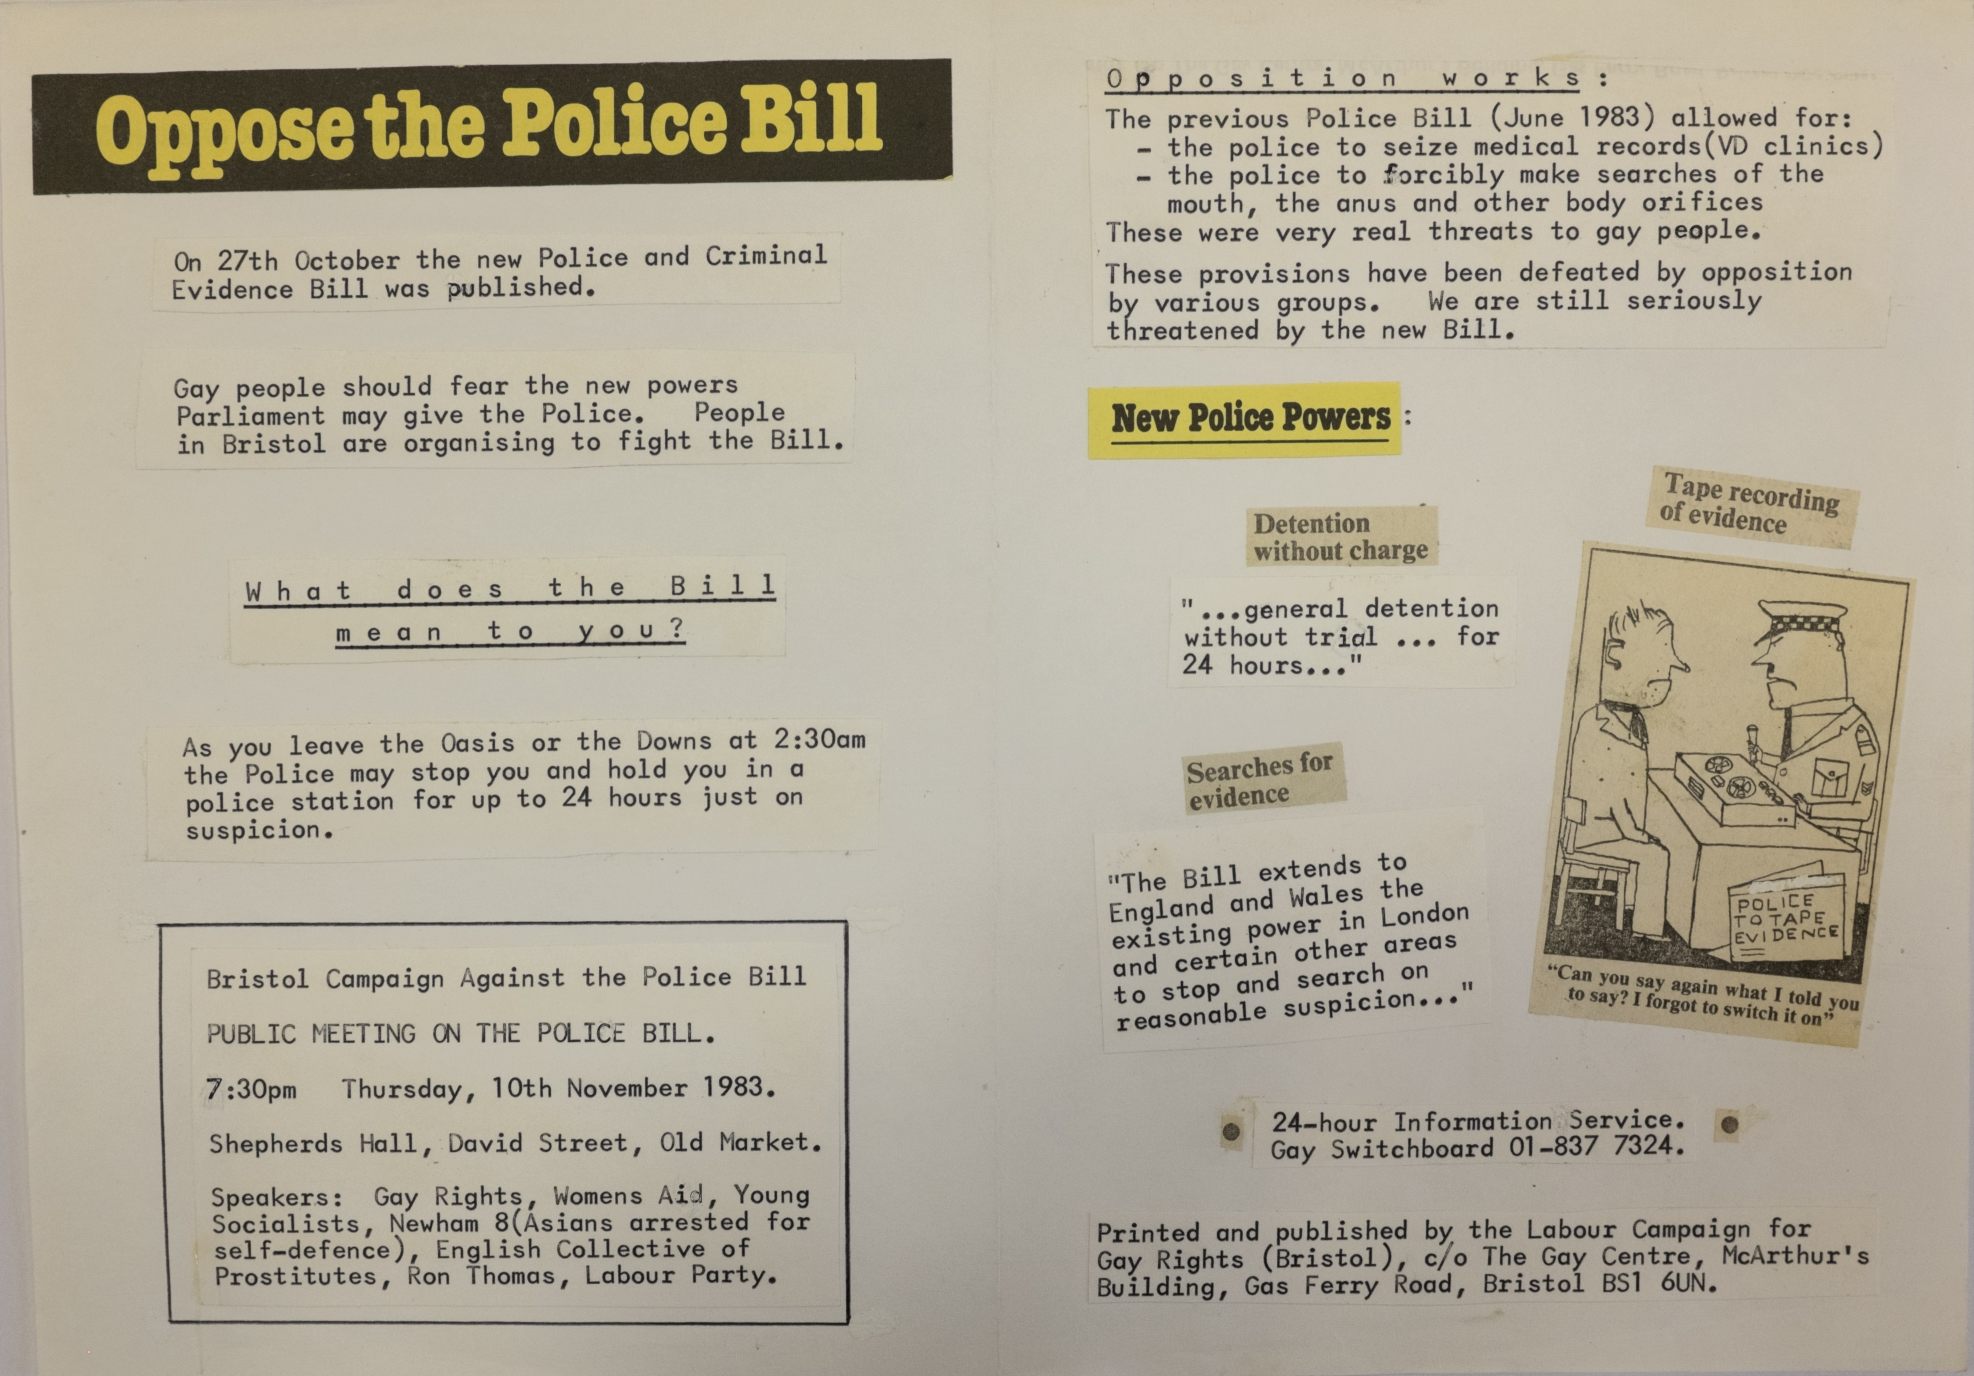 A mock-up of a flyer with the header 'Oppose the Police Bill'.